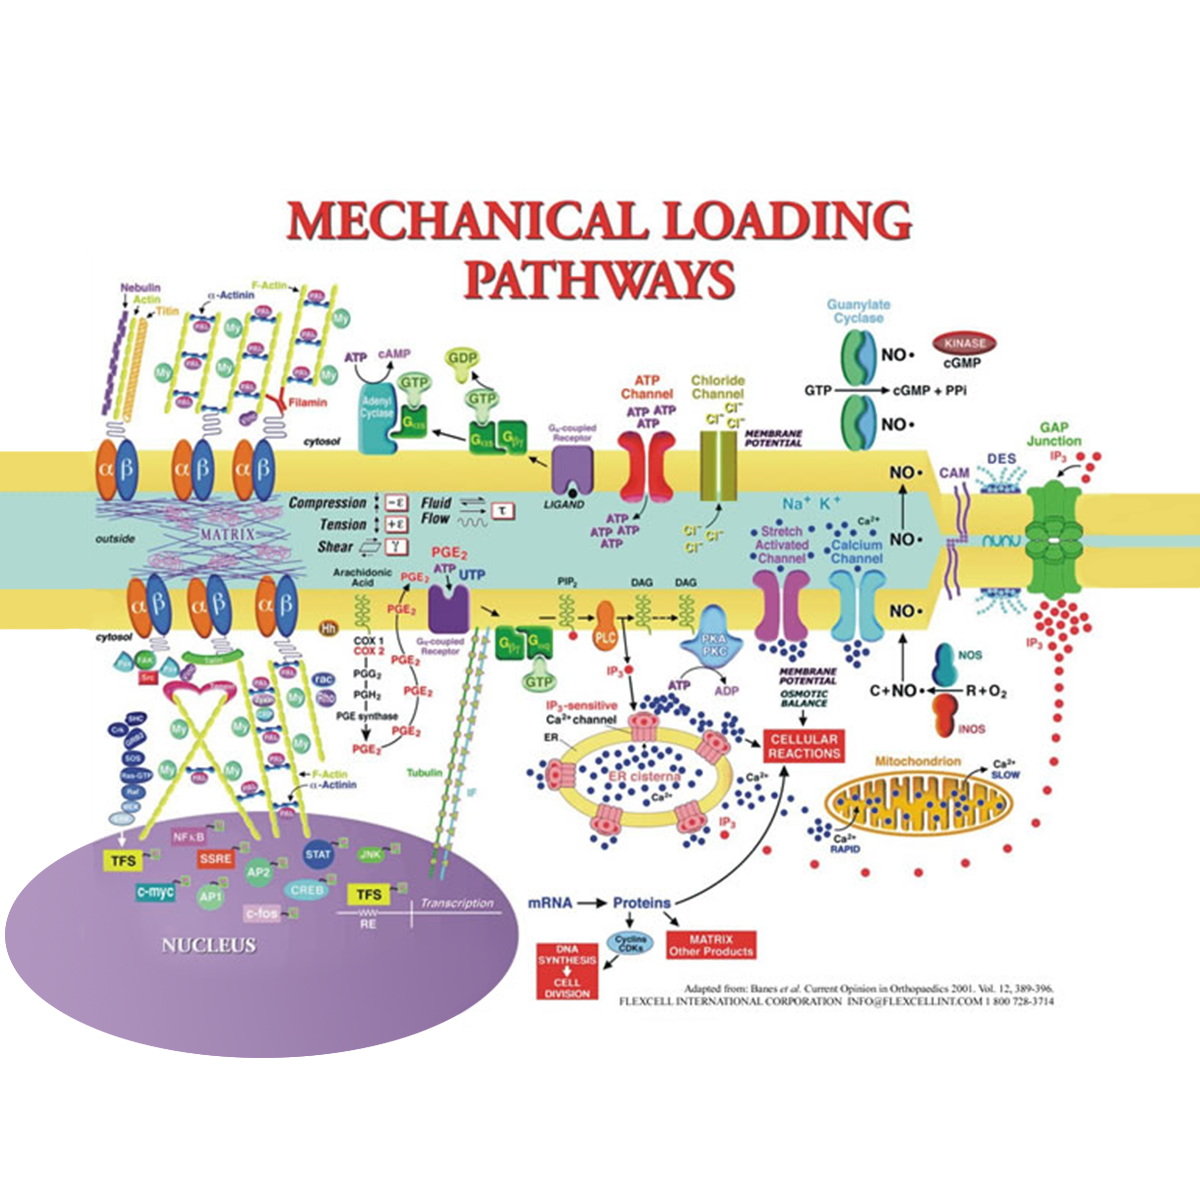 Mechanical Loading Pathways